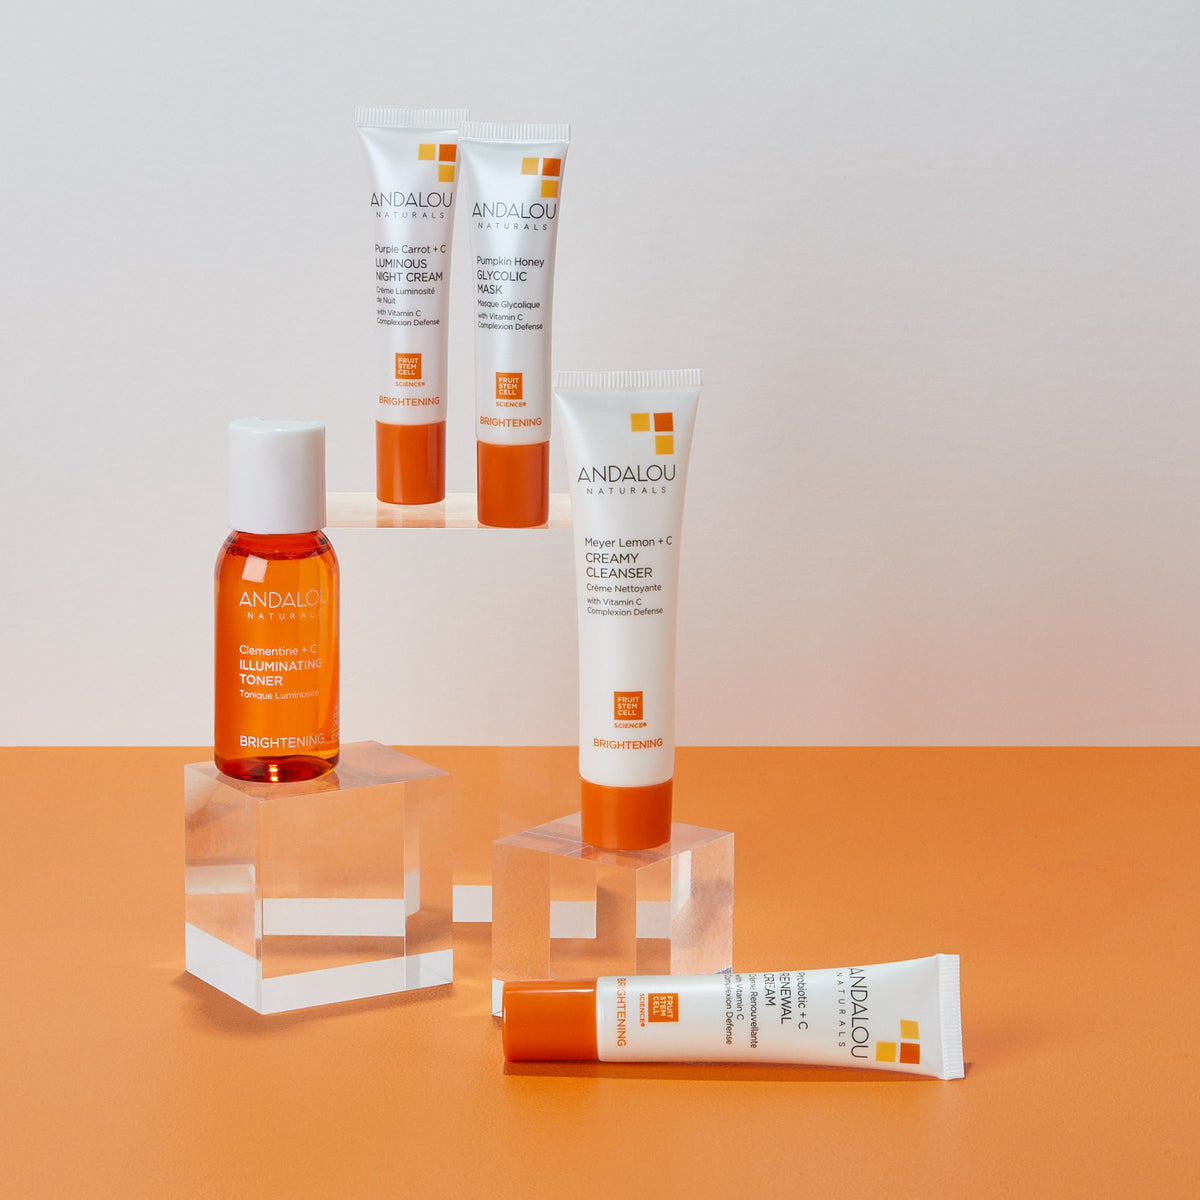 all the products of the Andalou Naturals Brightening Get Started Kit